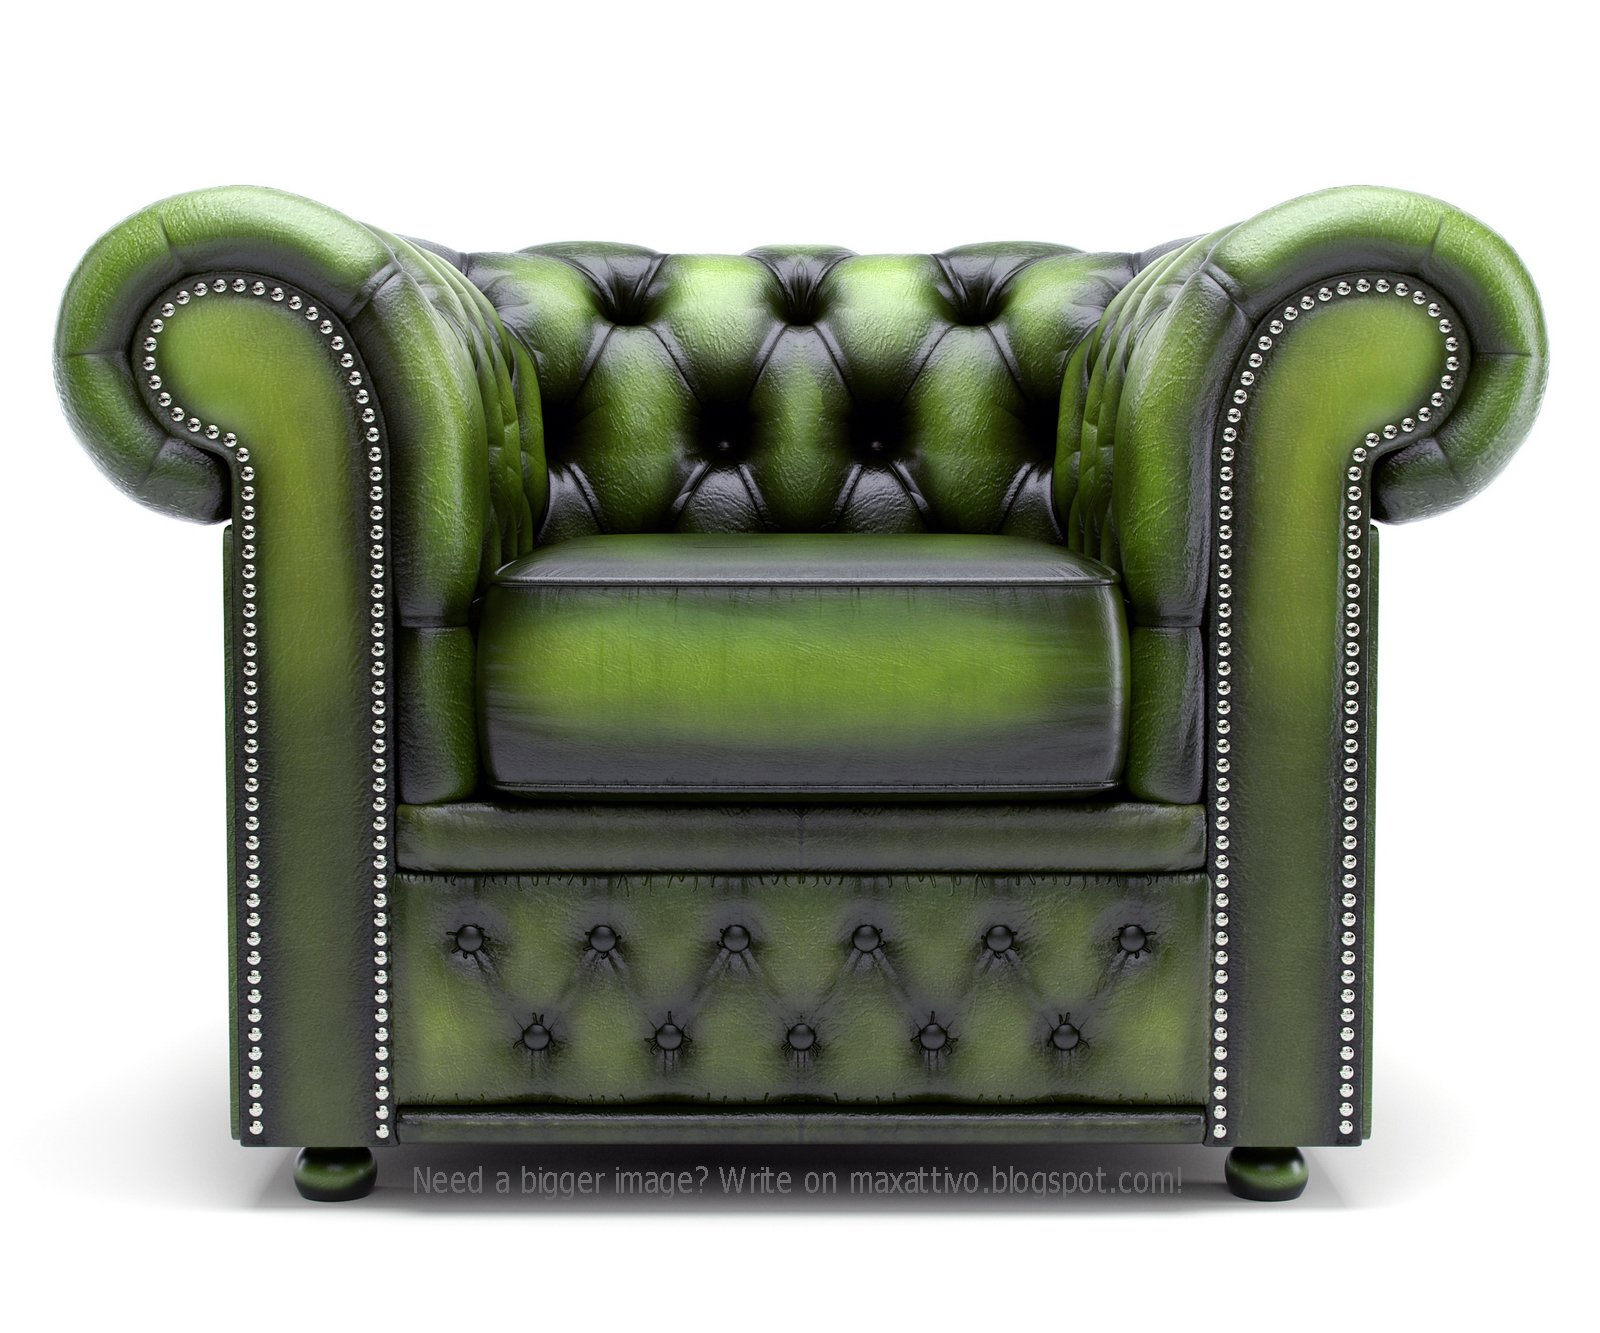 Green chesterfield armchair | Mobilier, Interieur